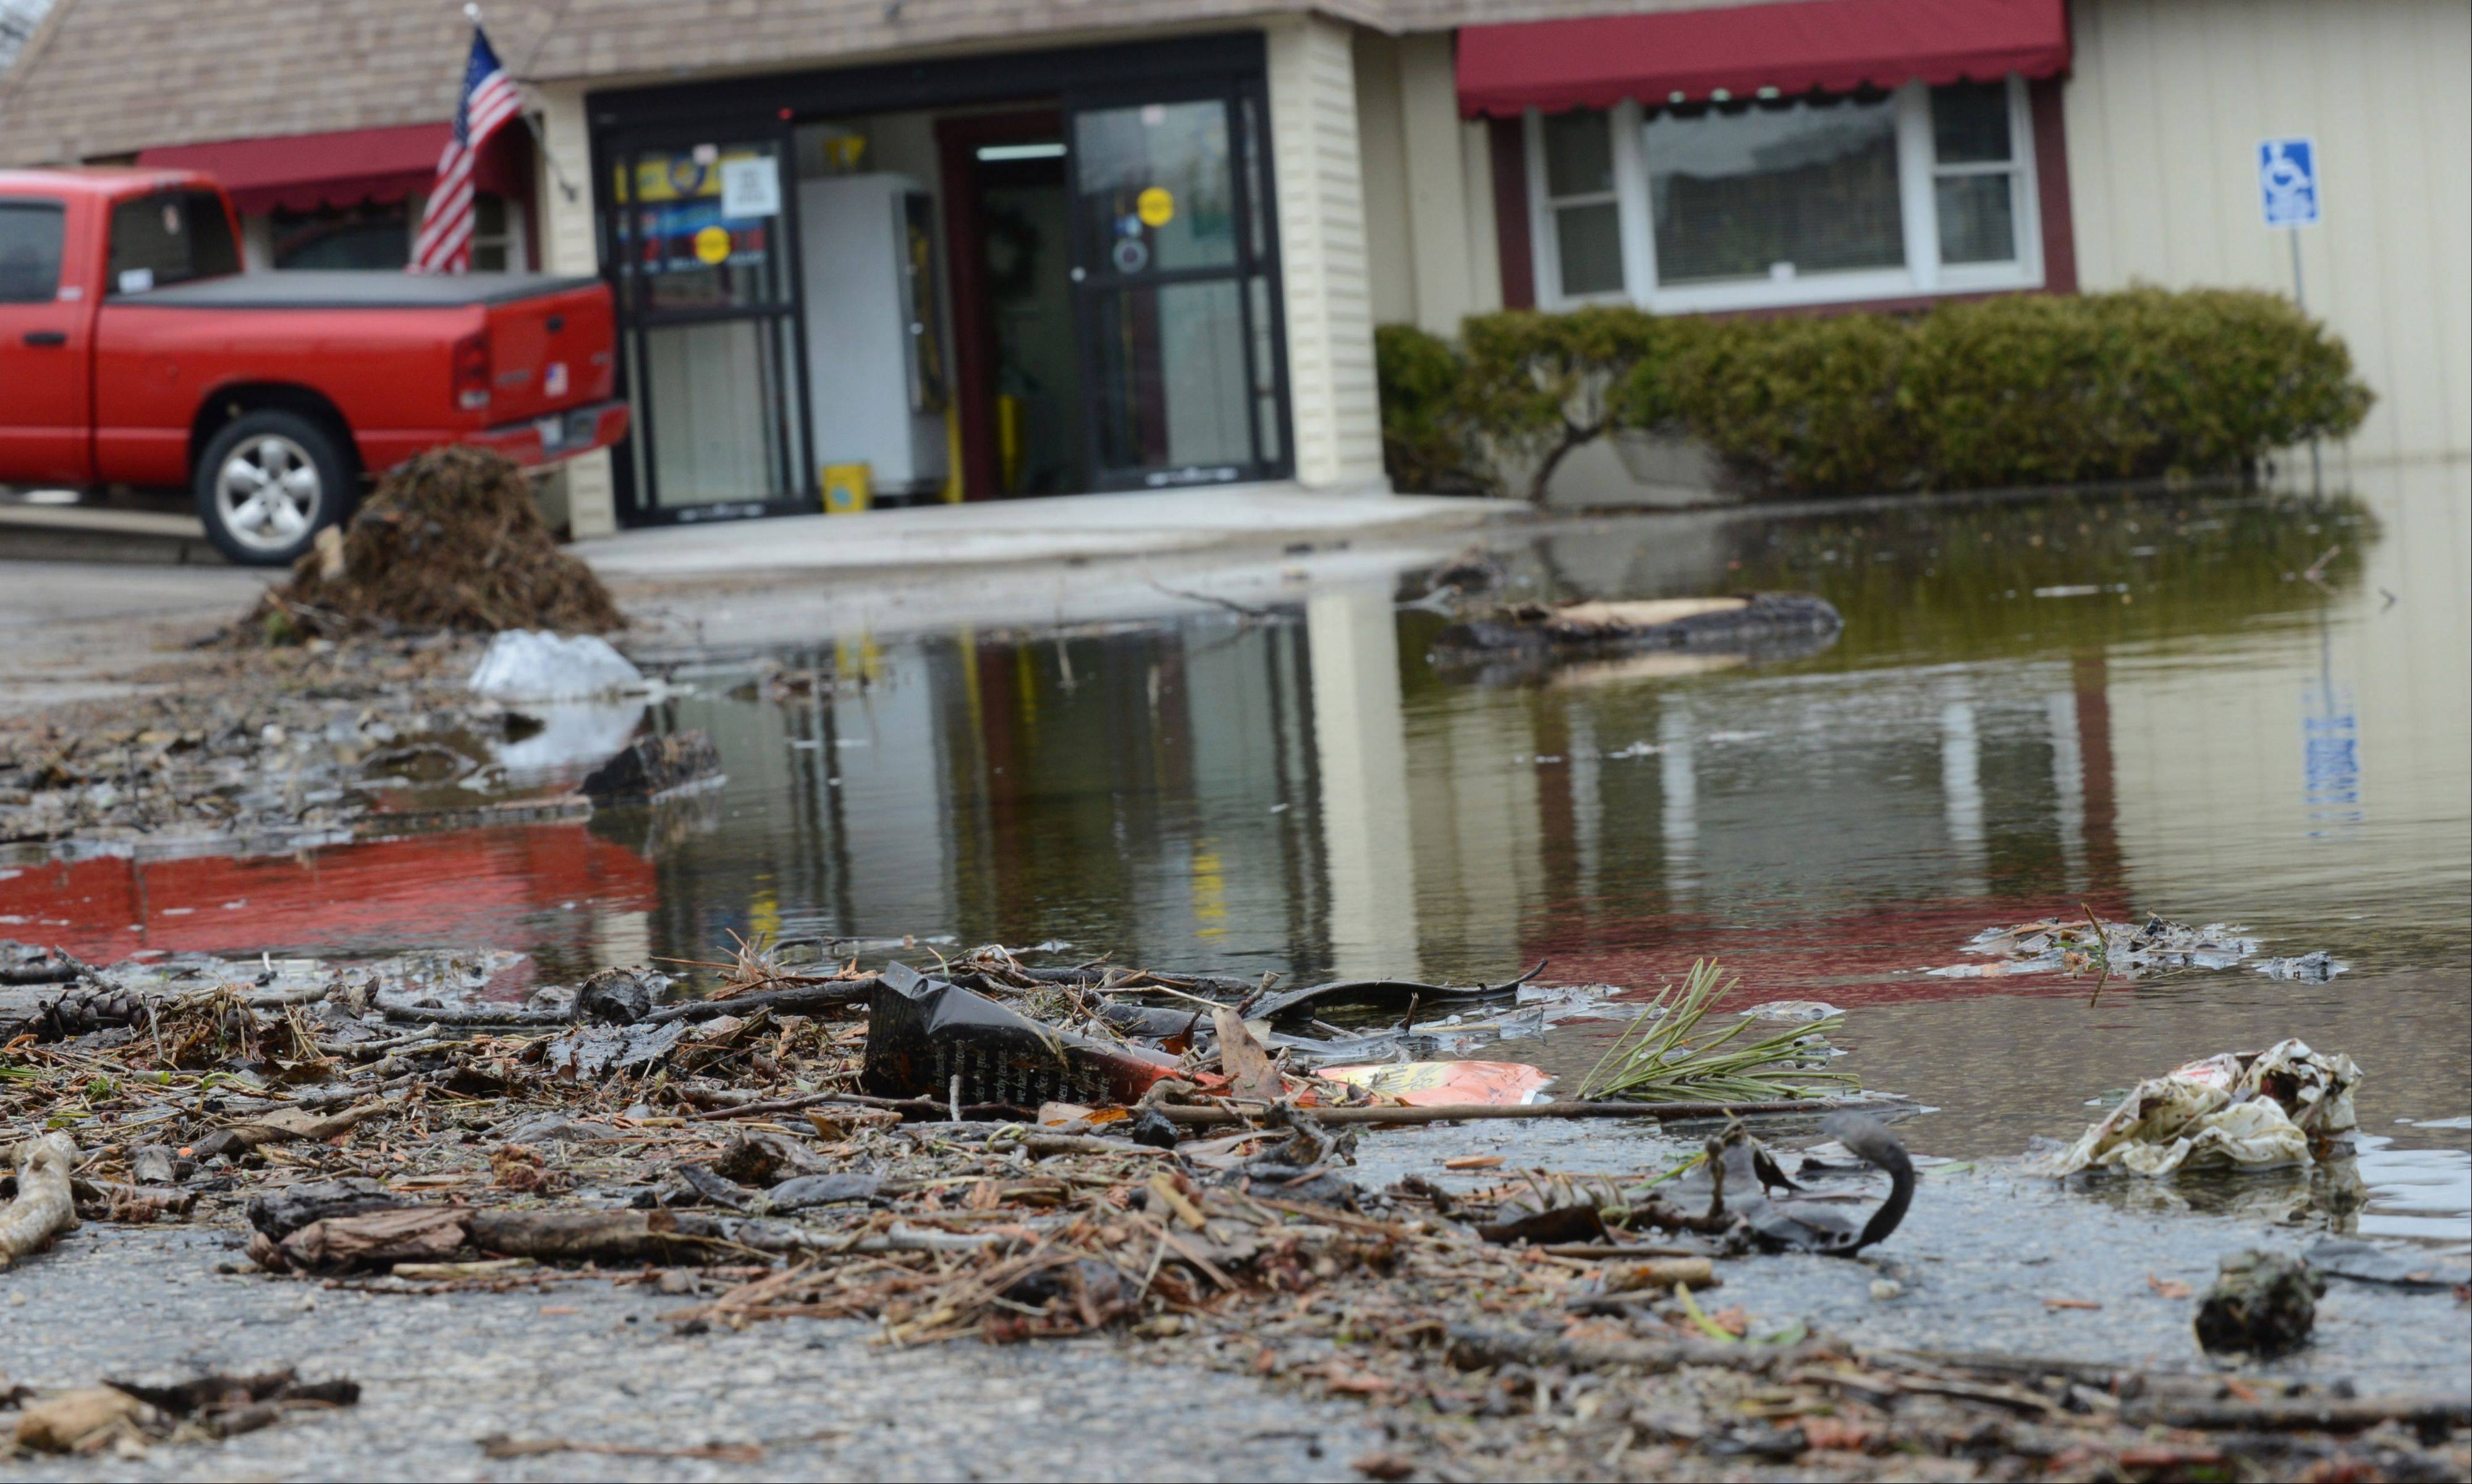 Debris left behind in the flooded parking lot of Channel Inn Fine Wine & Spirits on Grand Ave. in Fox Lake Tuesday morning.